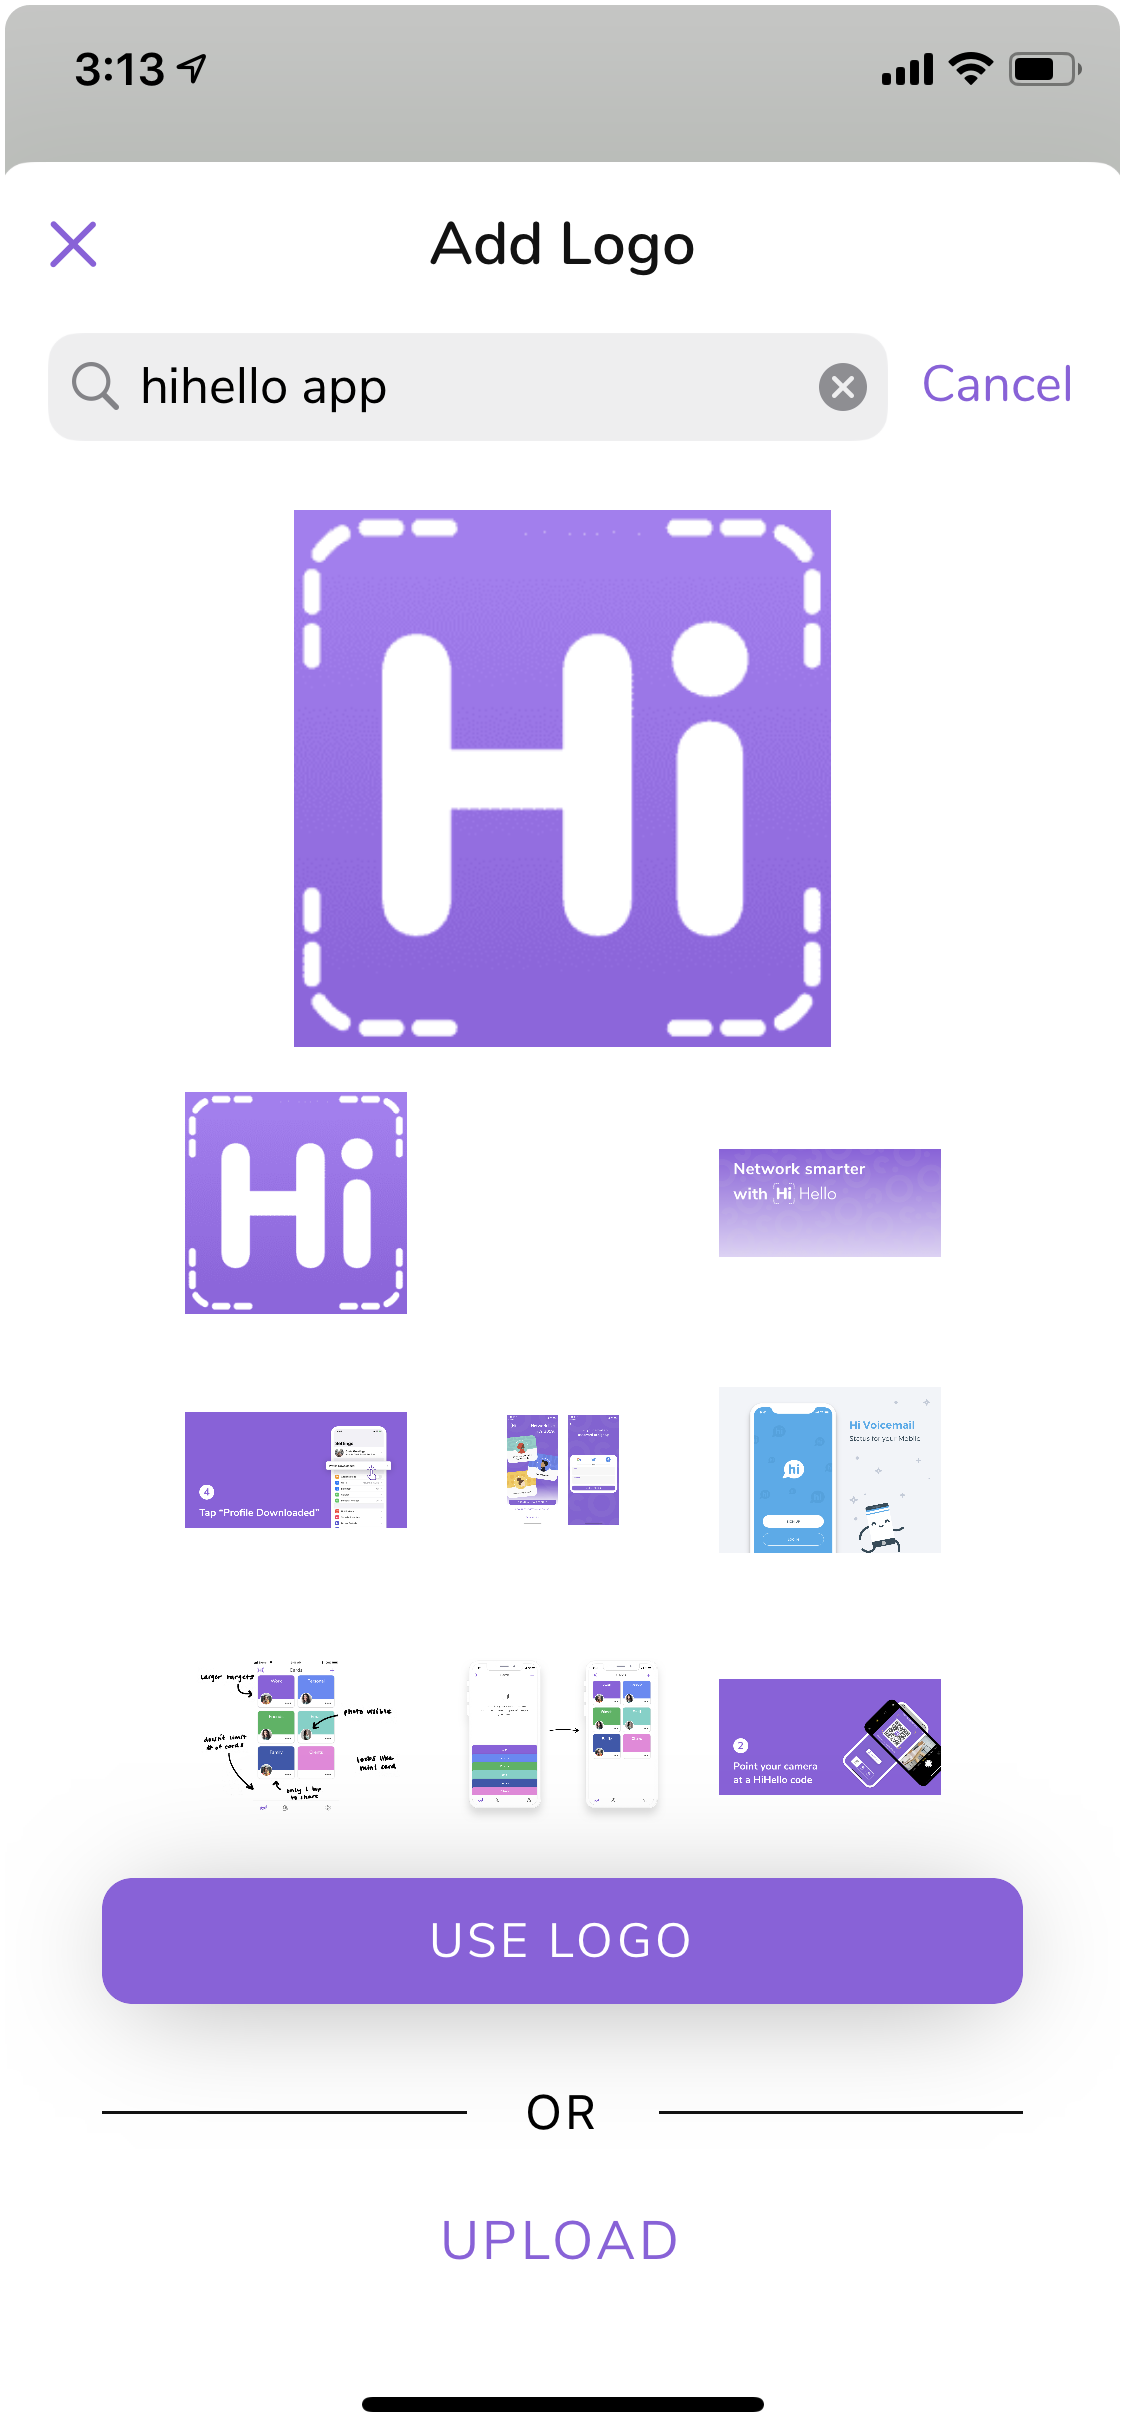 HiHello company logo search for digital business cards.